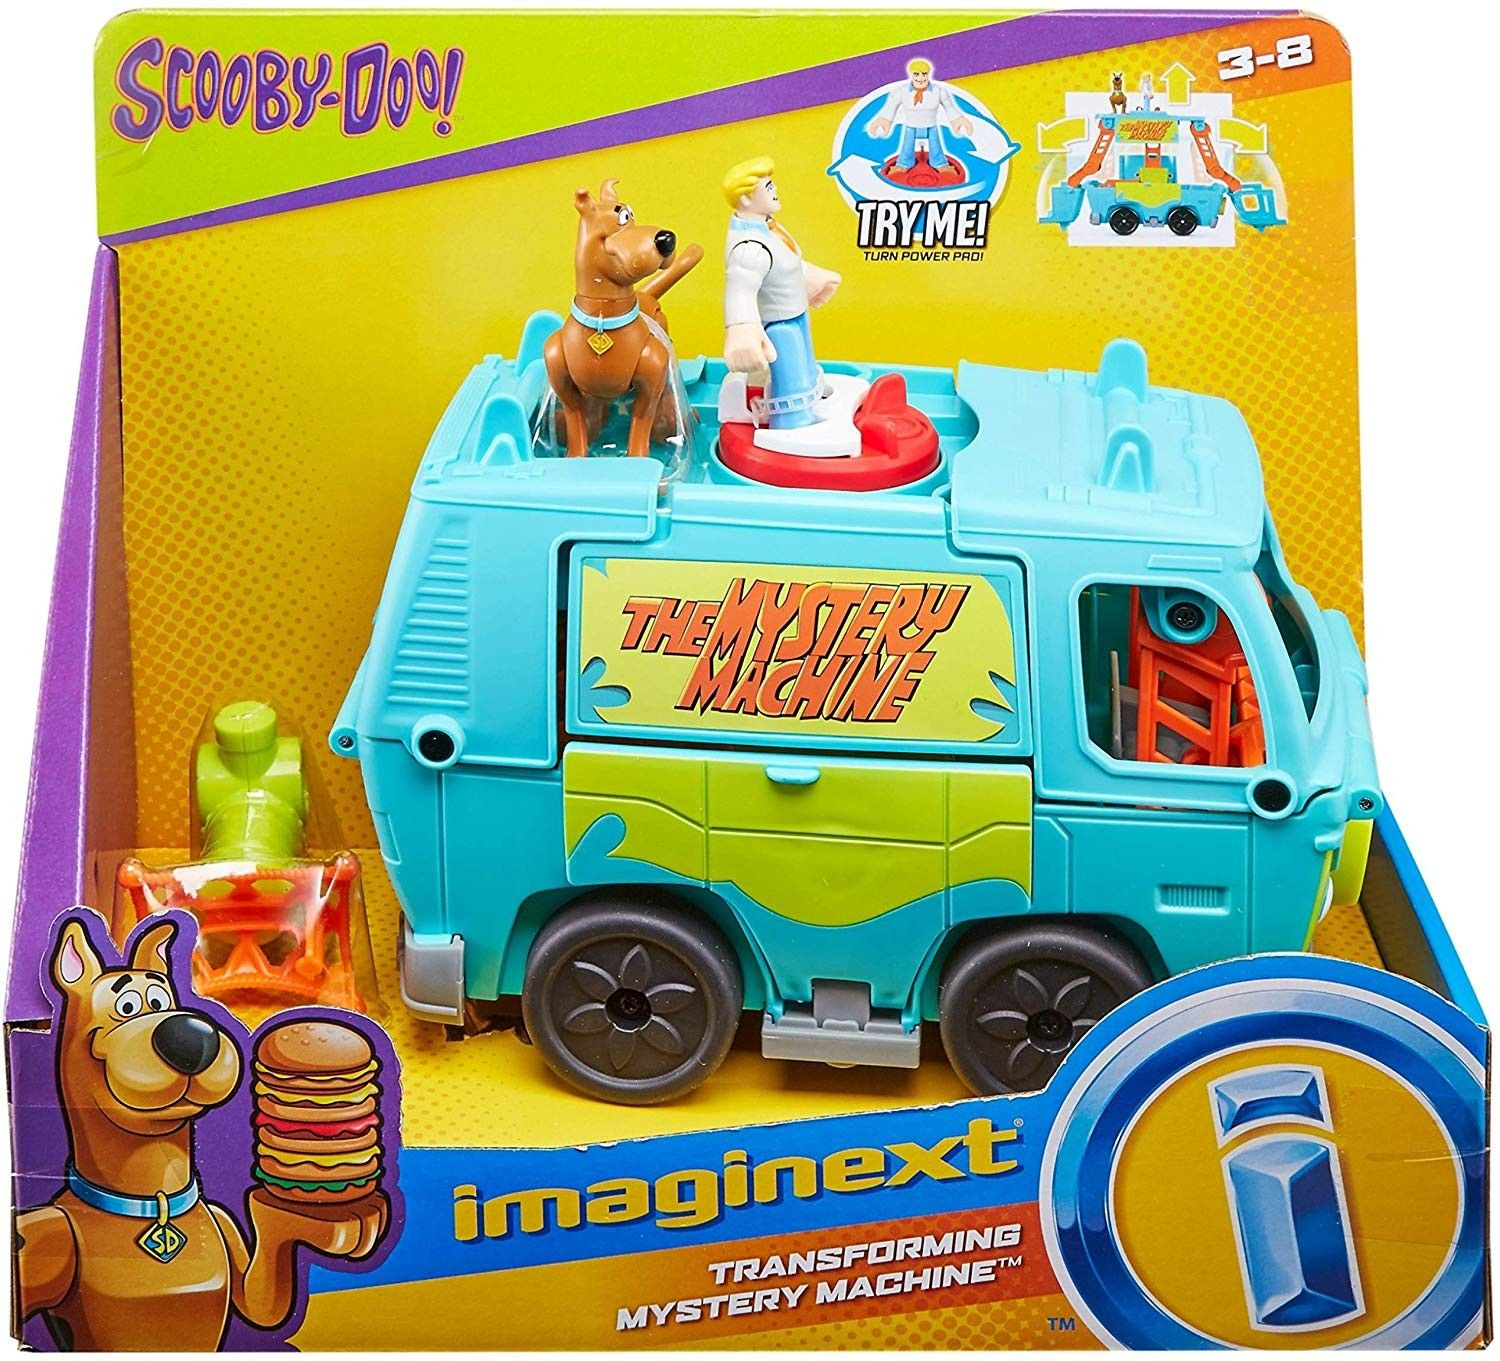 Pin by Bethany on ScoobyDoo Pictures Scooby doo toys